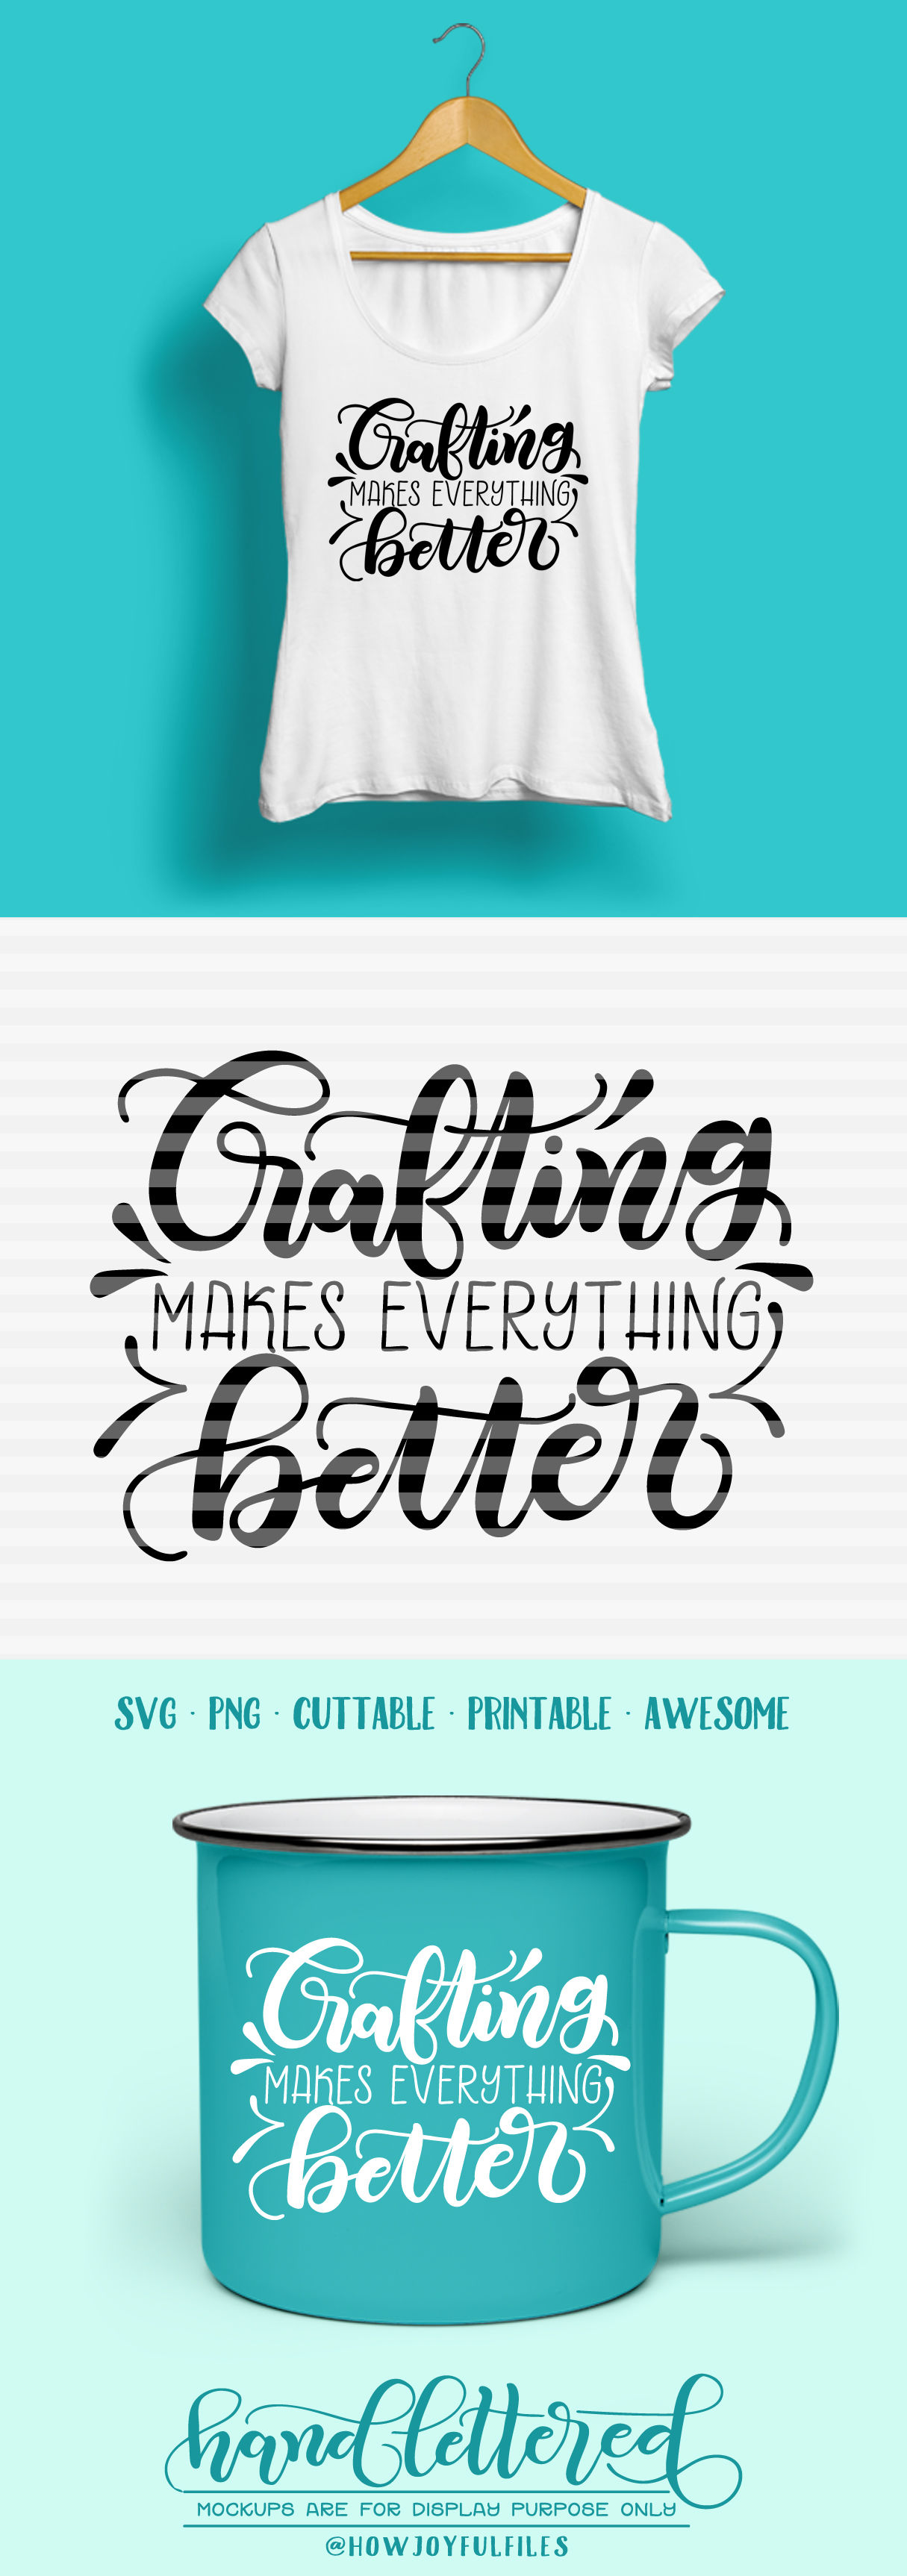 Crafting Makes Everything Better Svg Pdf Dxf Hand Drawn Lettered Cut File Graphic Overlay By Howjoyful Files Thehungryjpeg Com